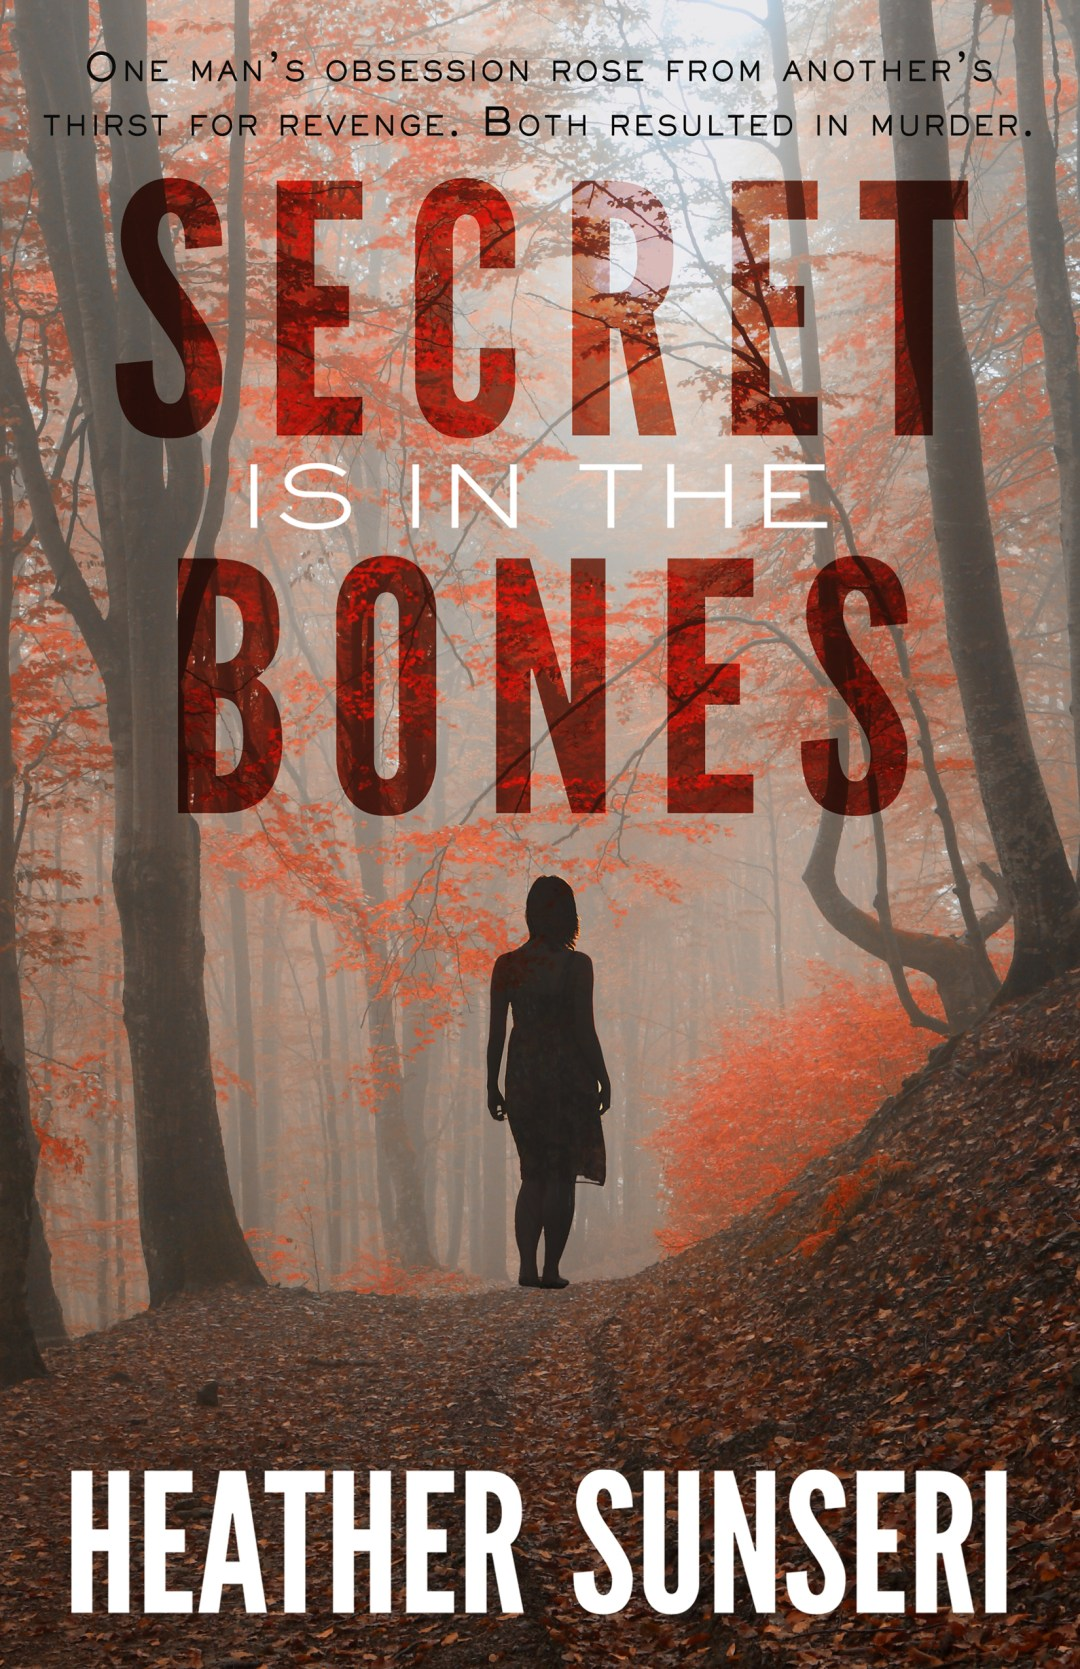 Secret is in the Bones by Heather Sunseri Paynes Creek psychological thriller romantic suspense